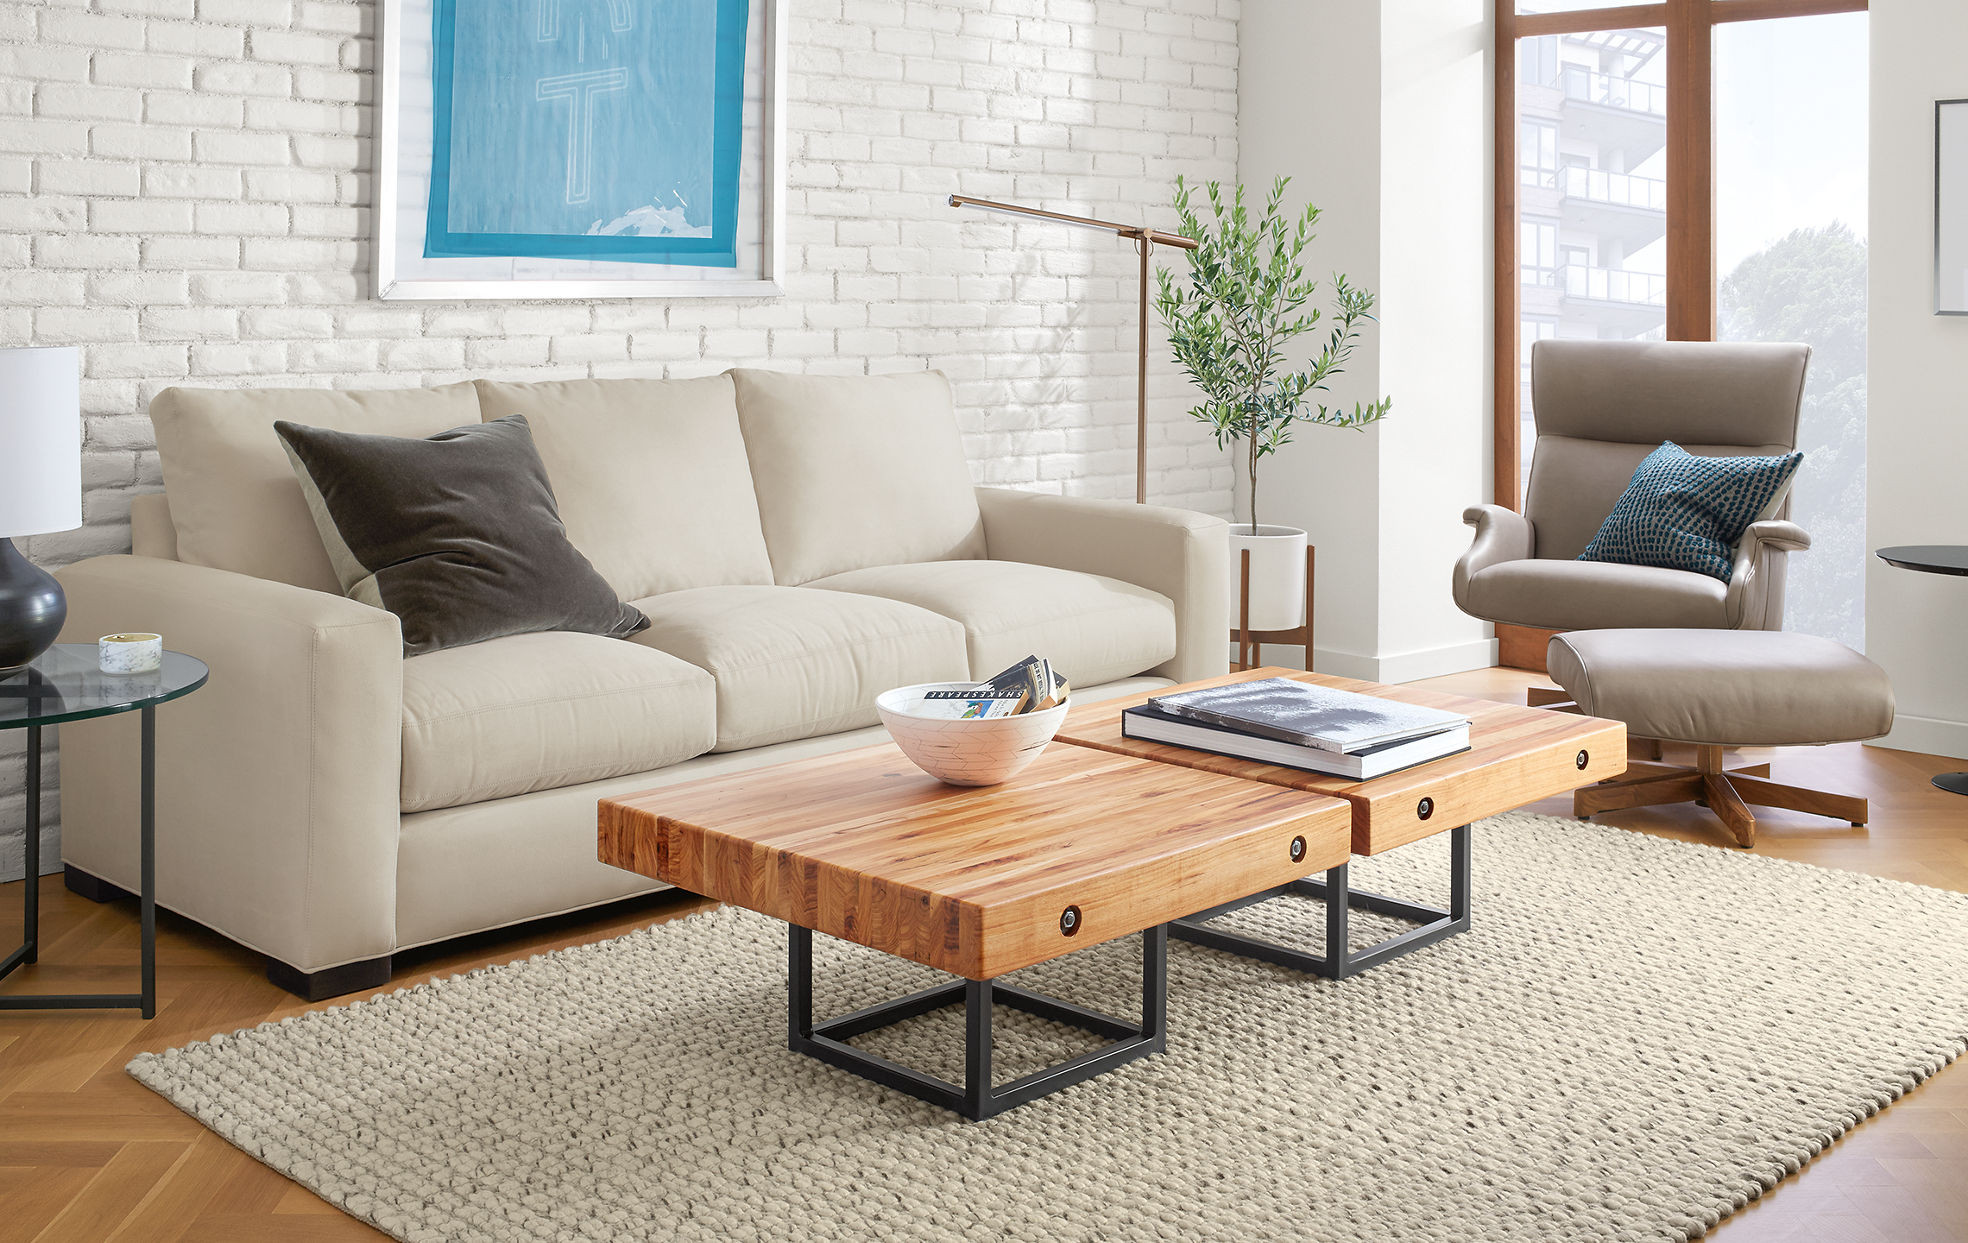 Best ideas about Family Room Rugs . Save or Pin Modern Rugs Rugs Room & Board Now.